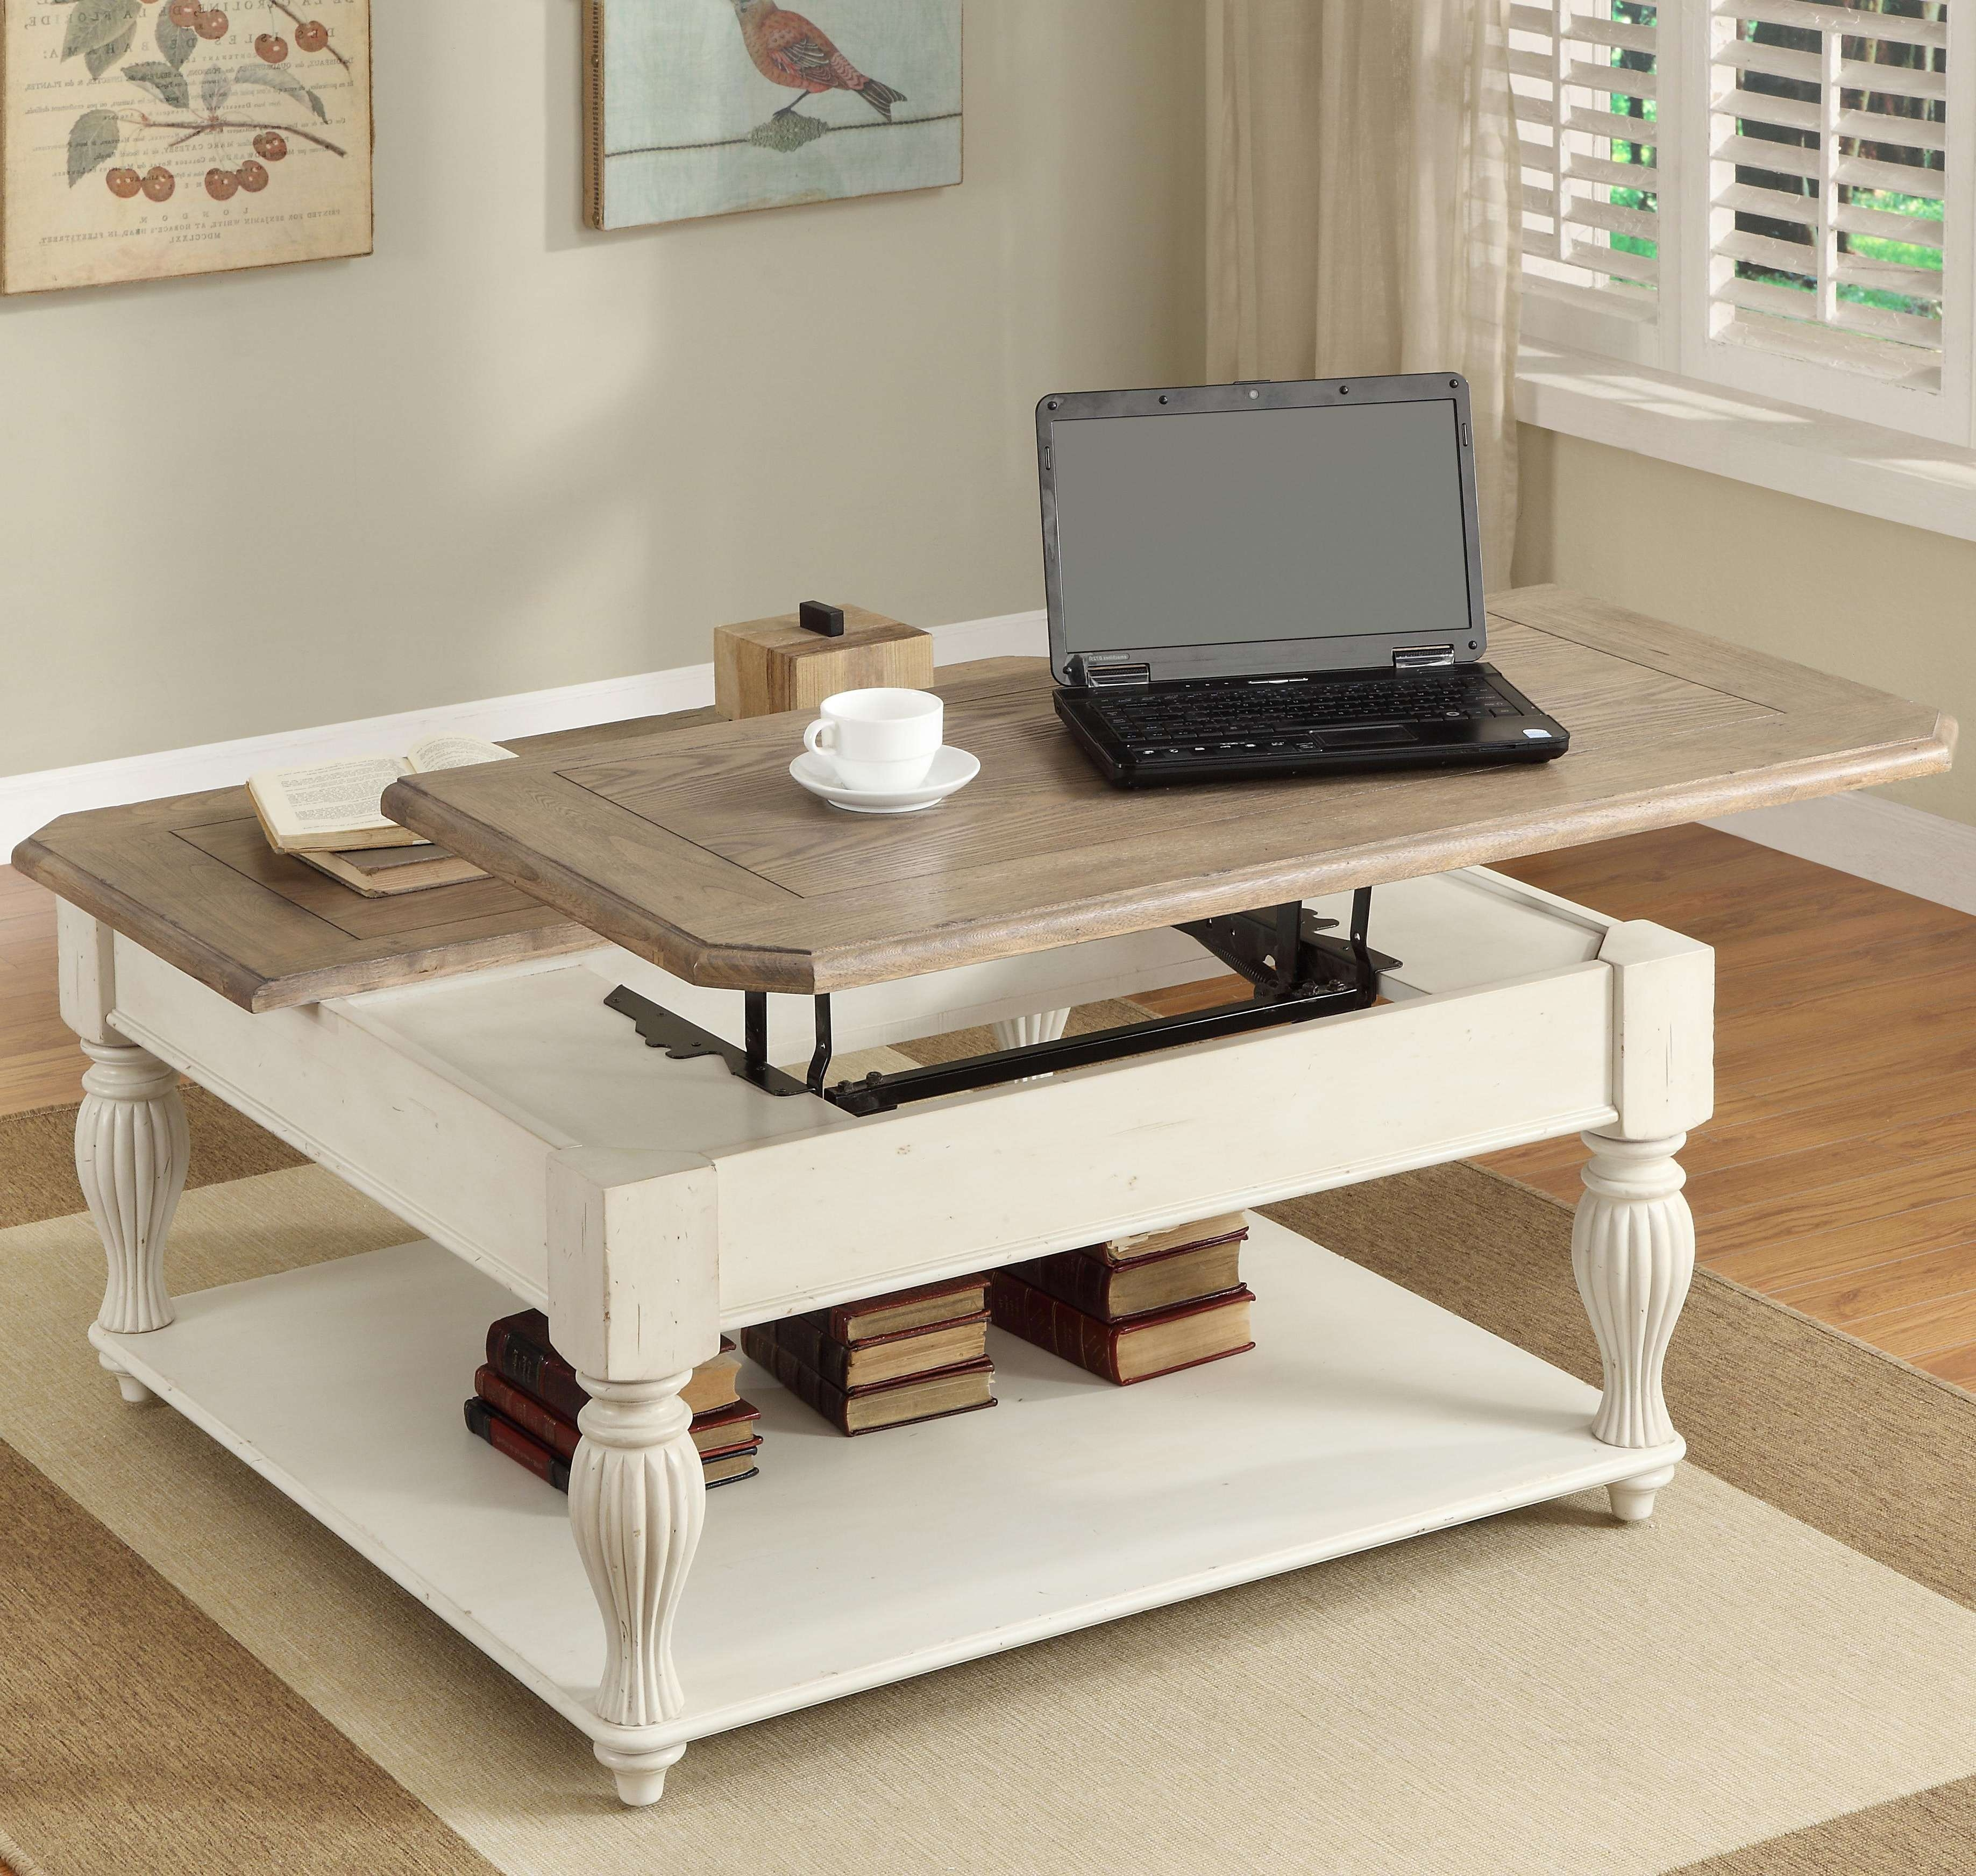 Best And Newest Lift Top Coffee Tables With Storage Throughout Square Lift Top Coffee Table With Fixed Bottom Shelfriverside (View 4 of 20)